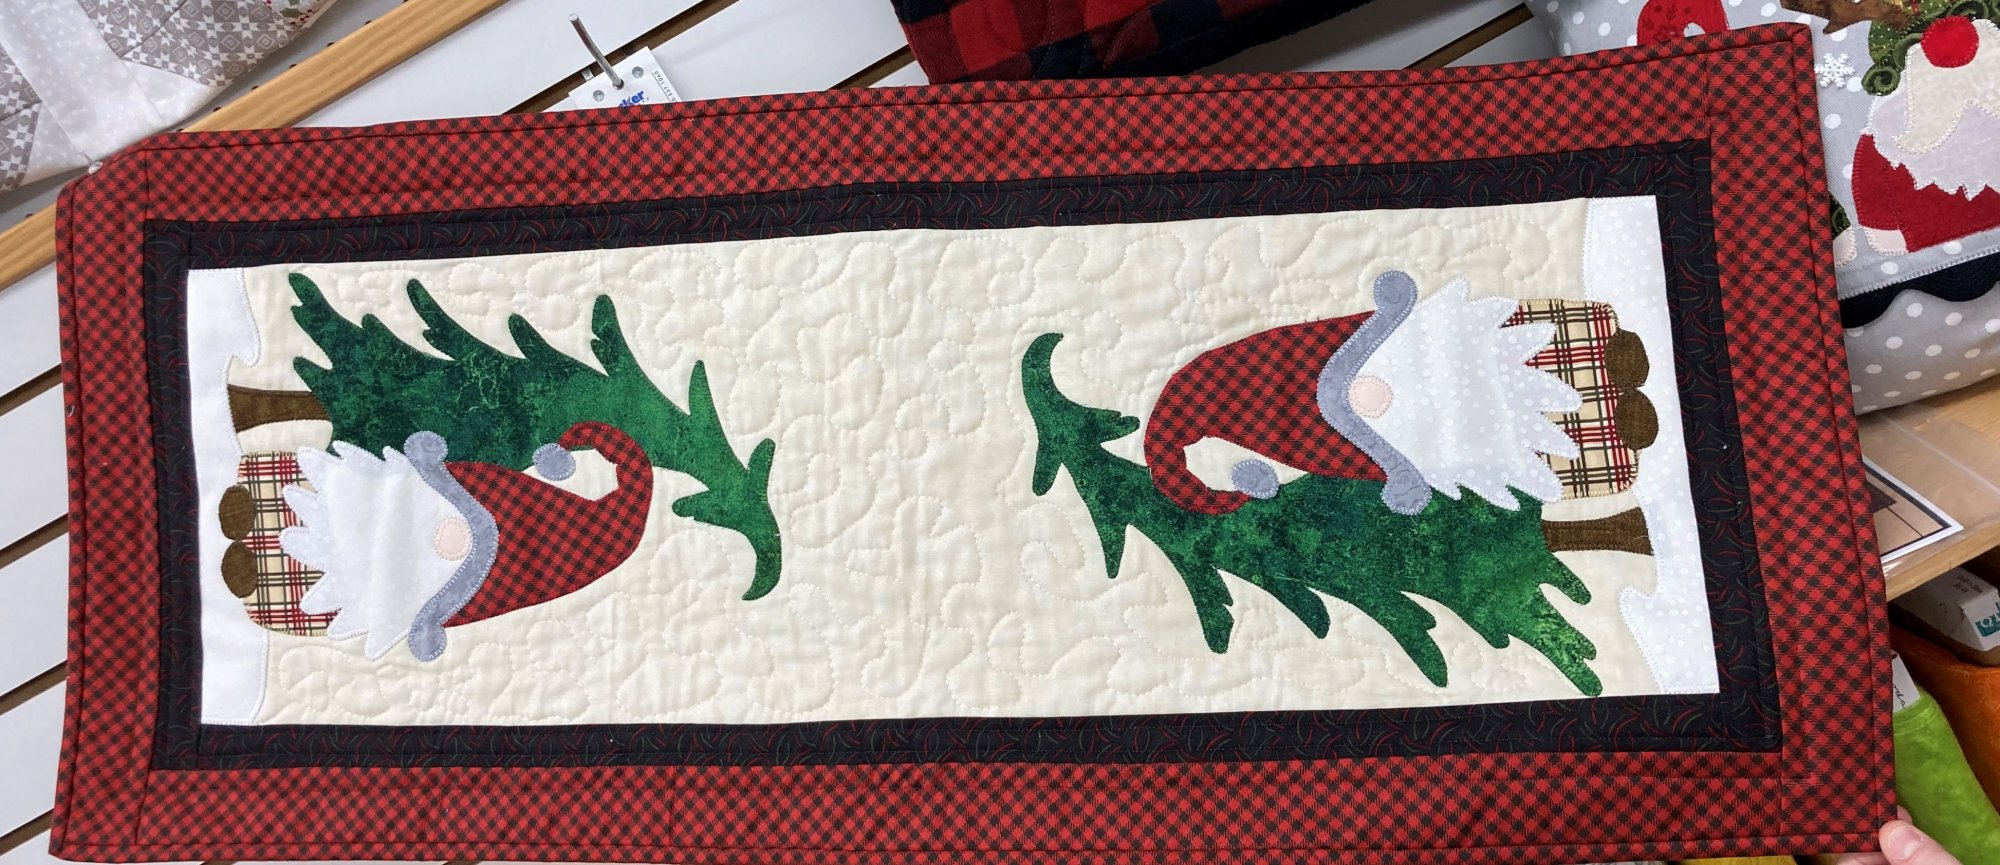 Home With A Gnome Kit  16 x 37.5